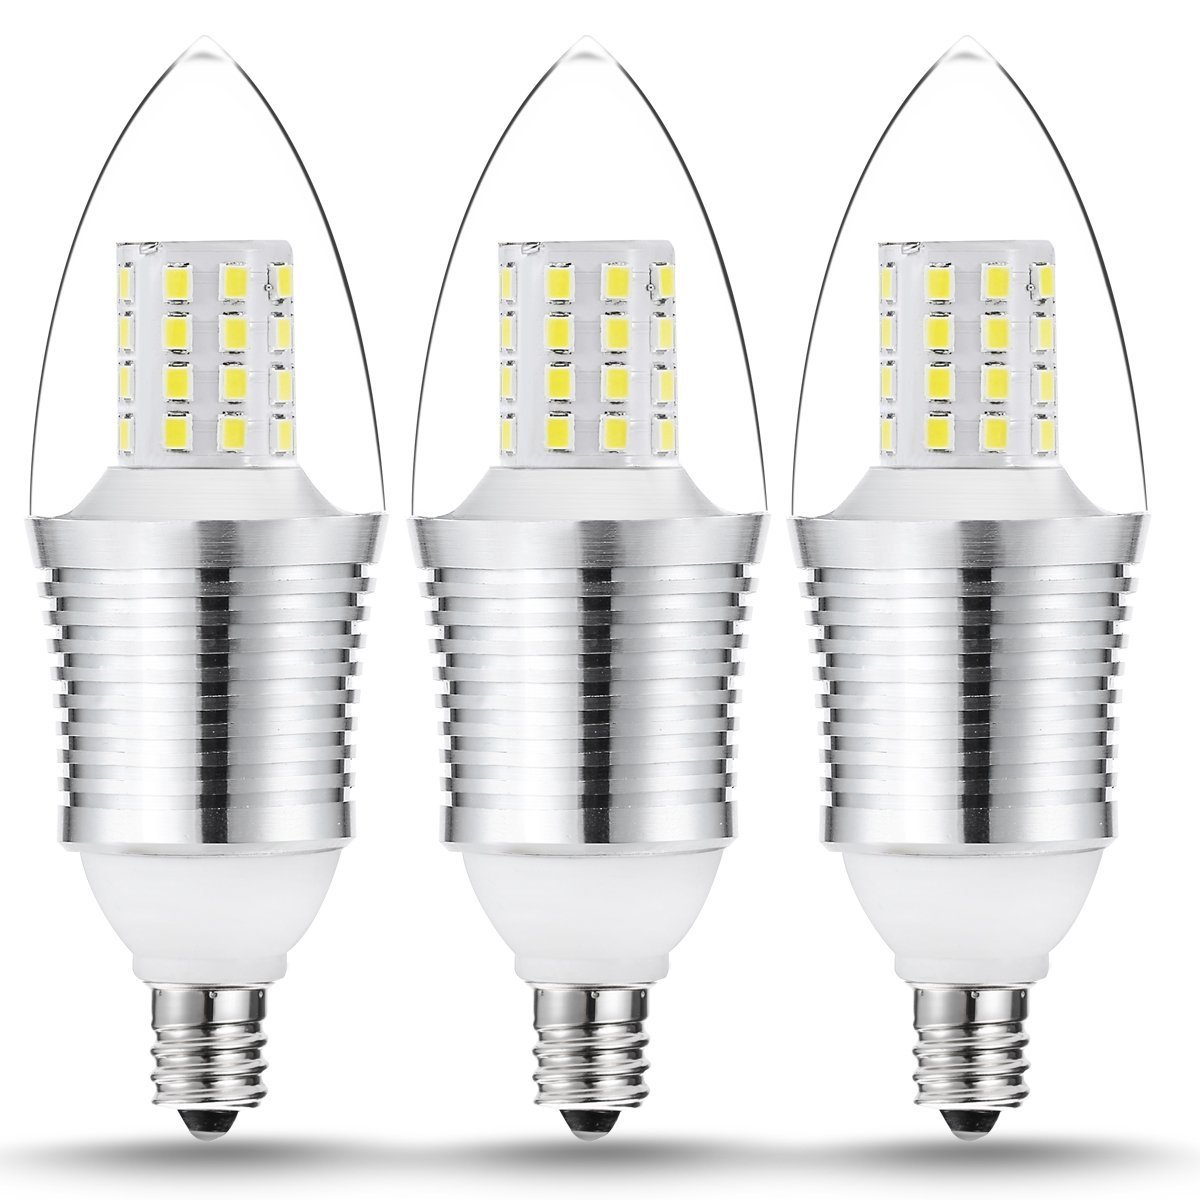 Free shipping 3 pack 9 watt led light bulbs crystal white glow free shipping 3 pack 9 watt led light bulbs crystal white glow 5000k arubaitofo Images